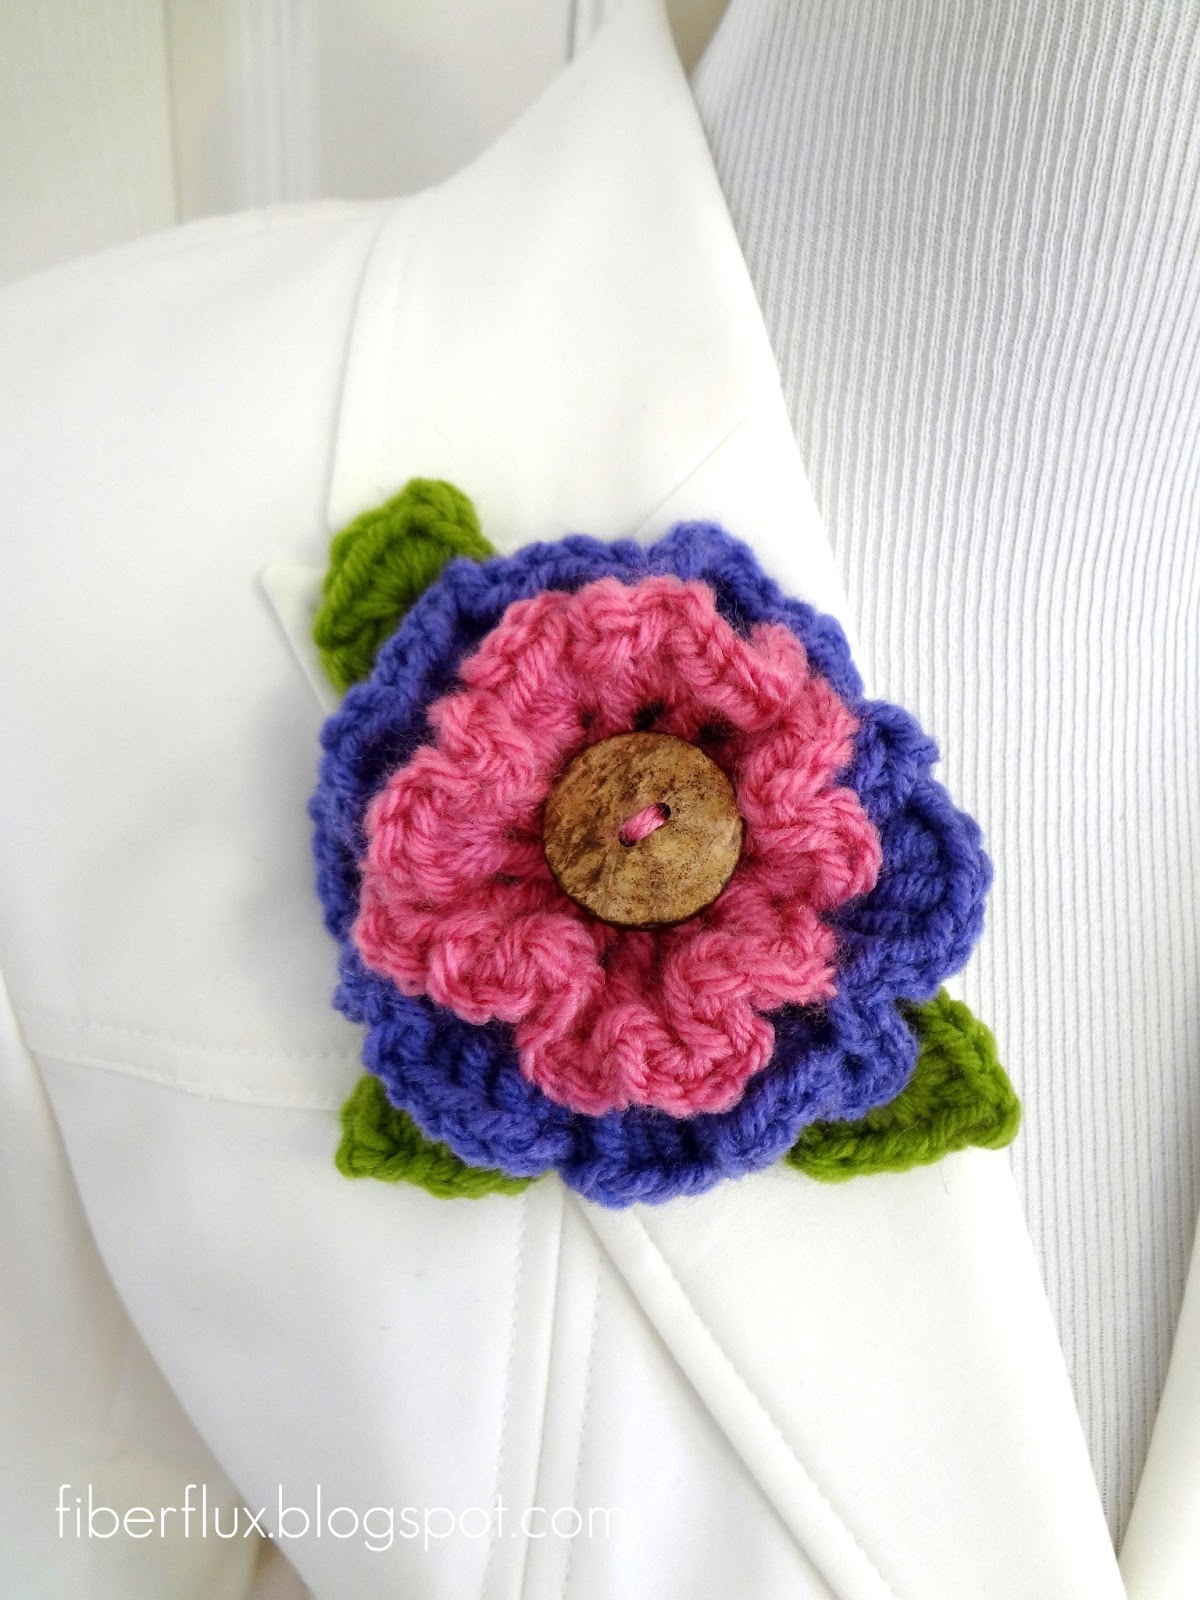 Free Ruffle Yarn Crochet Patterns : Fiber Flux: Free Crochet Pattern...Layered Ruffle Flower